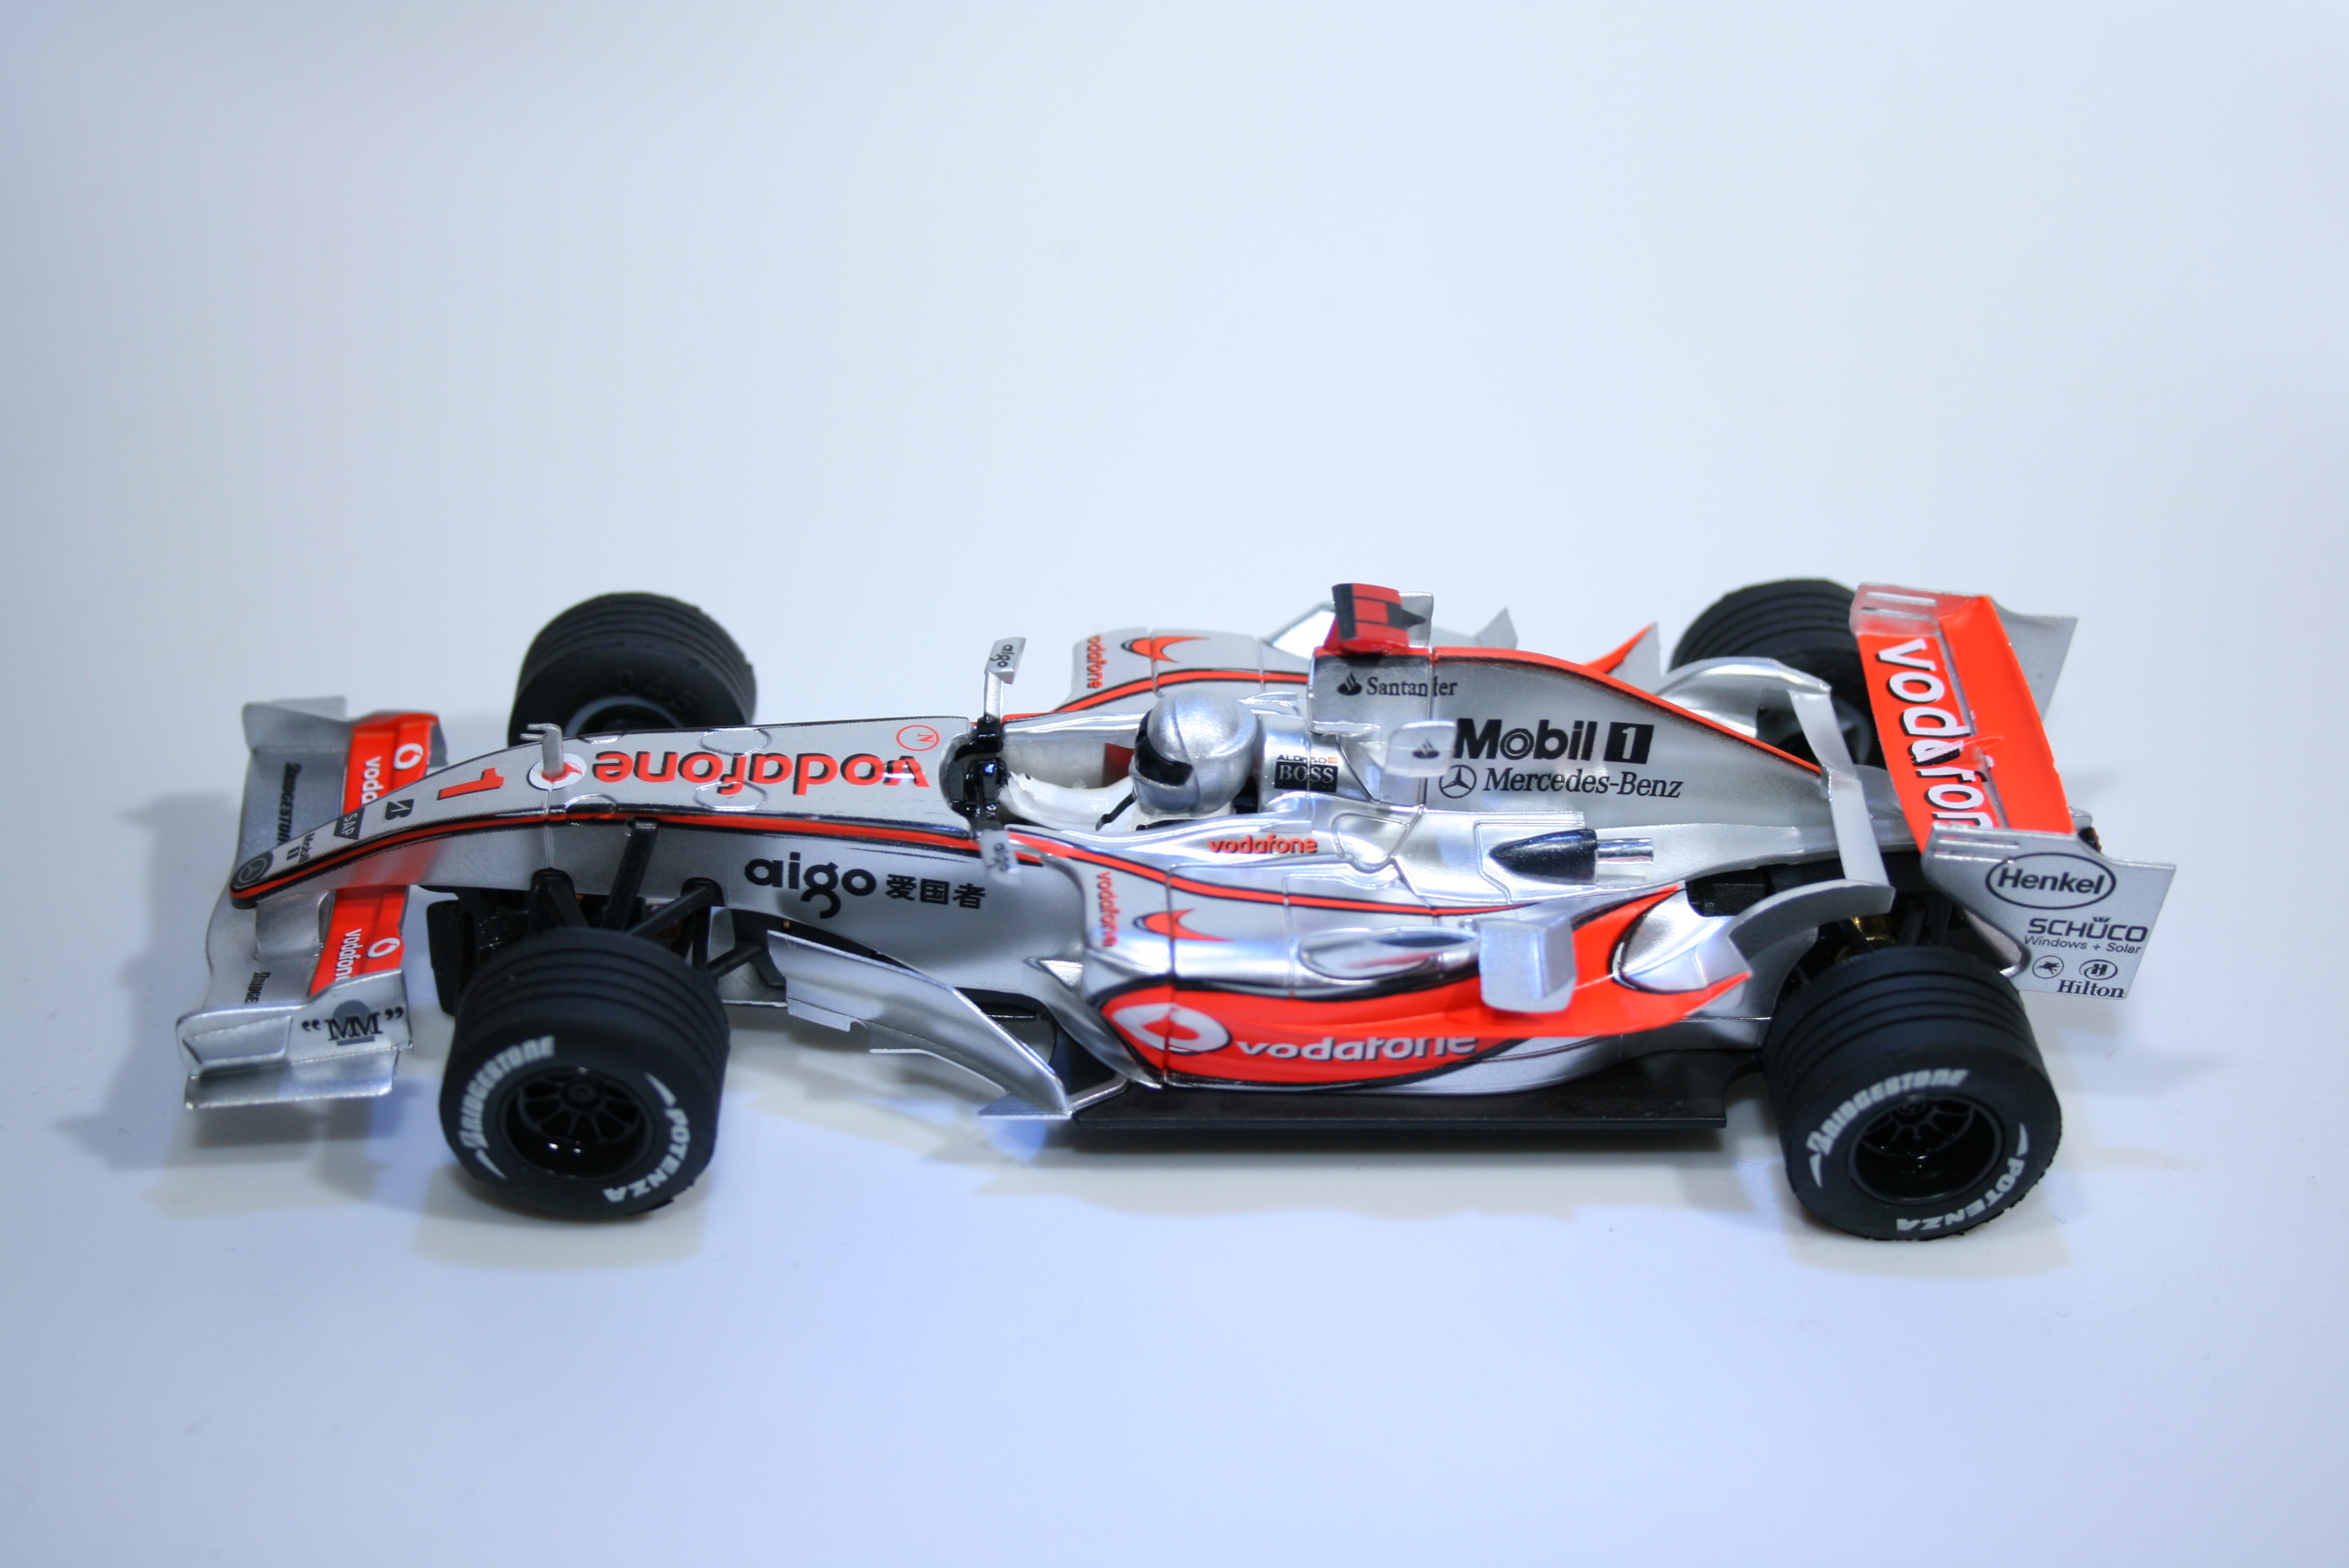 373 Mclaren MP4/22 2007 F Alonso SCX 62570 2008 Boxed